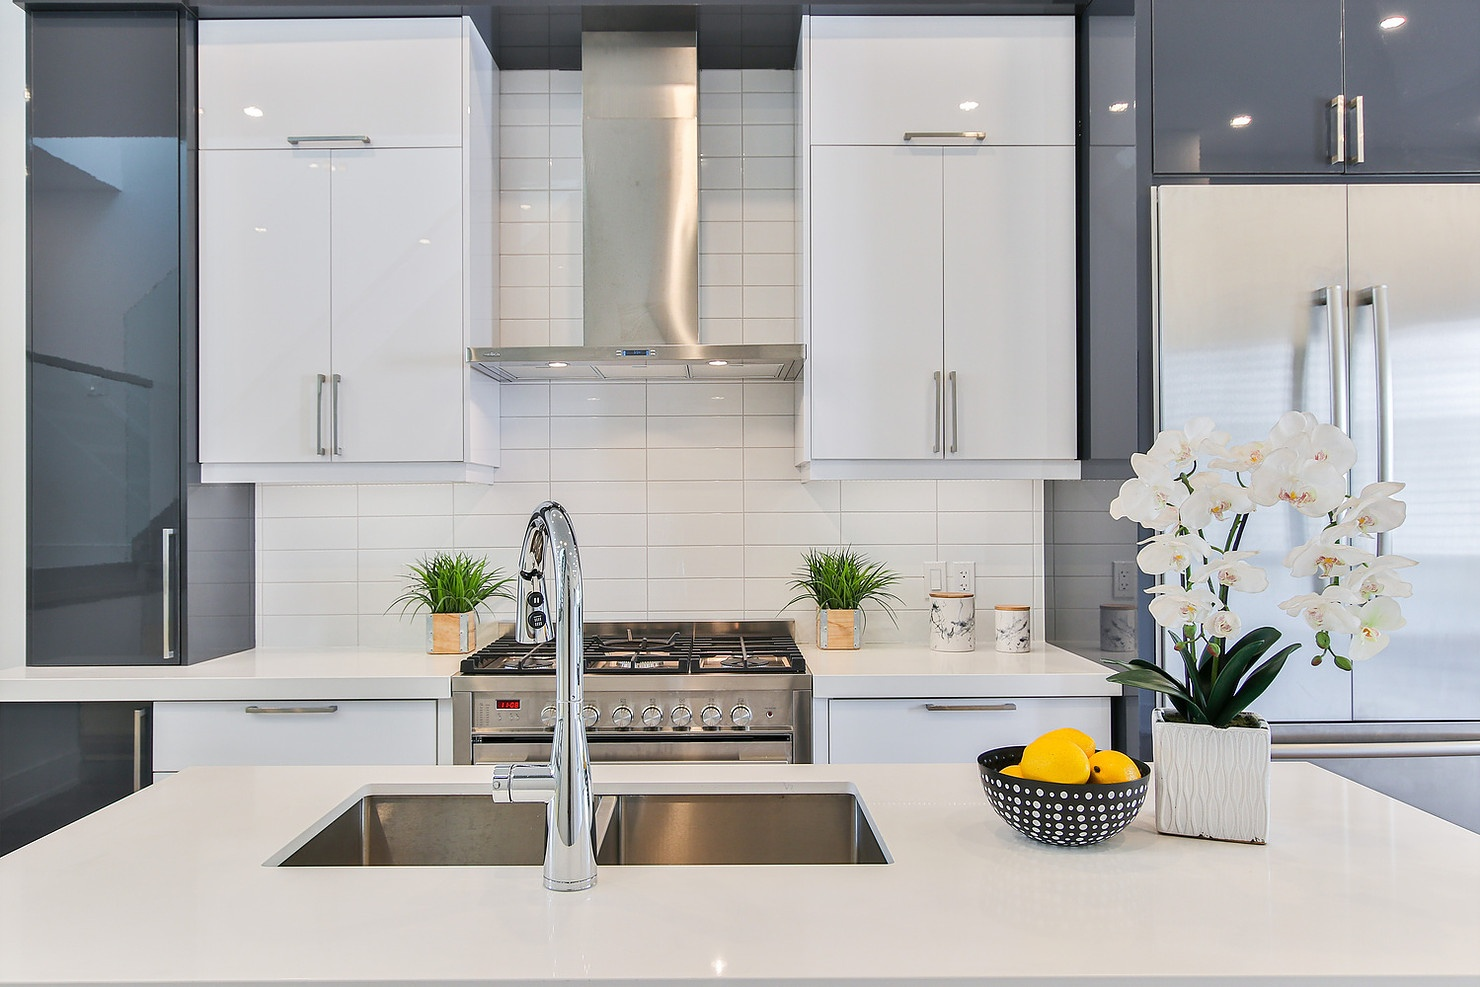 Is Acrylic Coating Better Than Laminate For Kitchen Cabinets